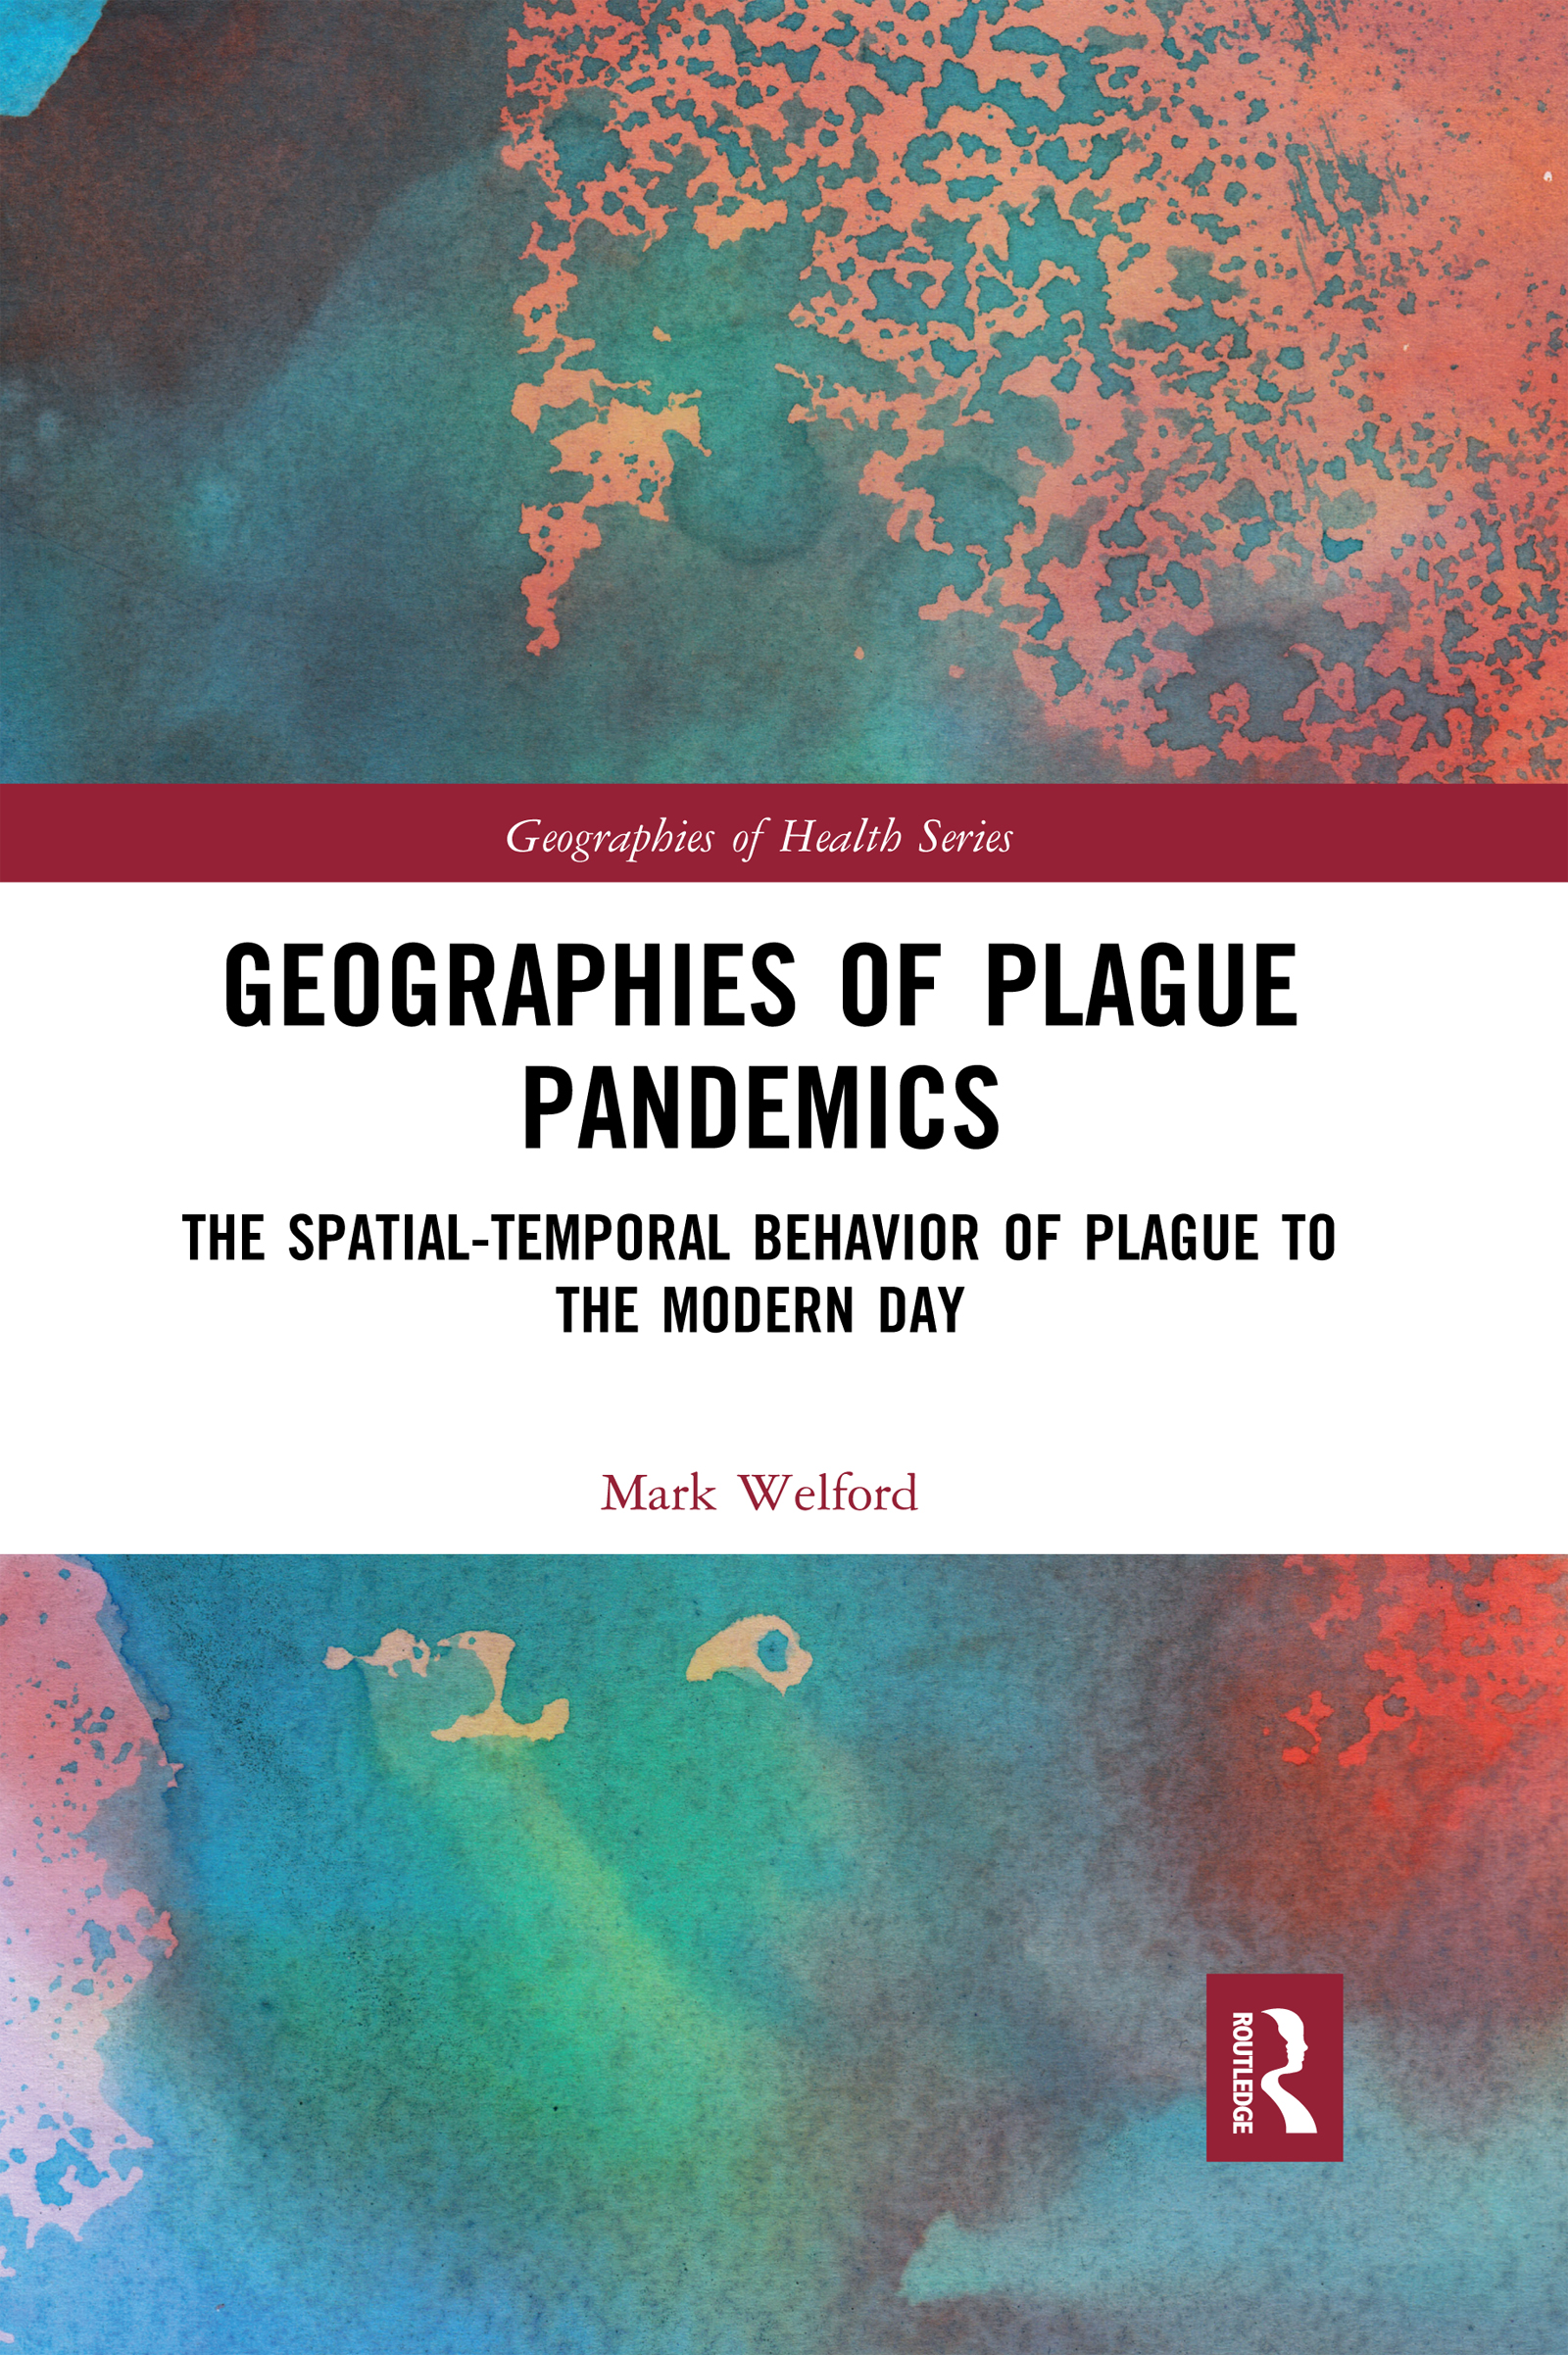 Geographies of Plague Pandemics